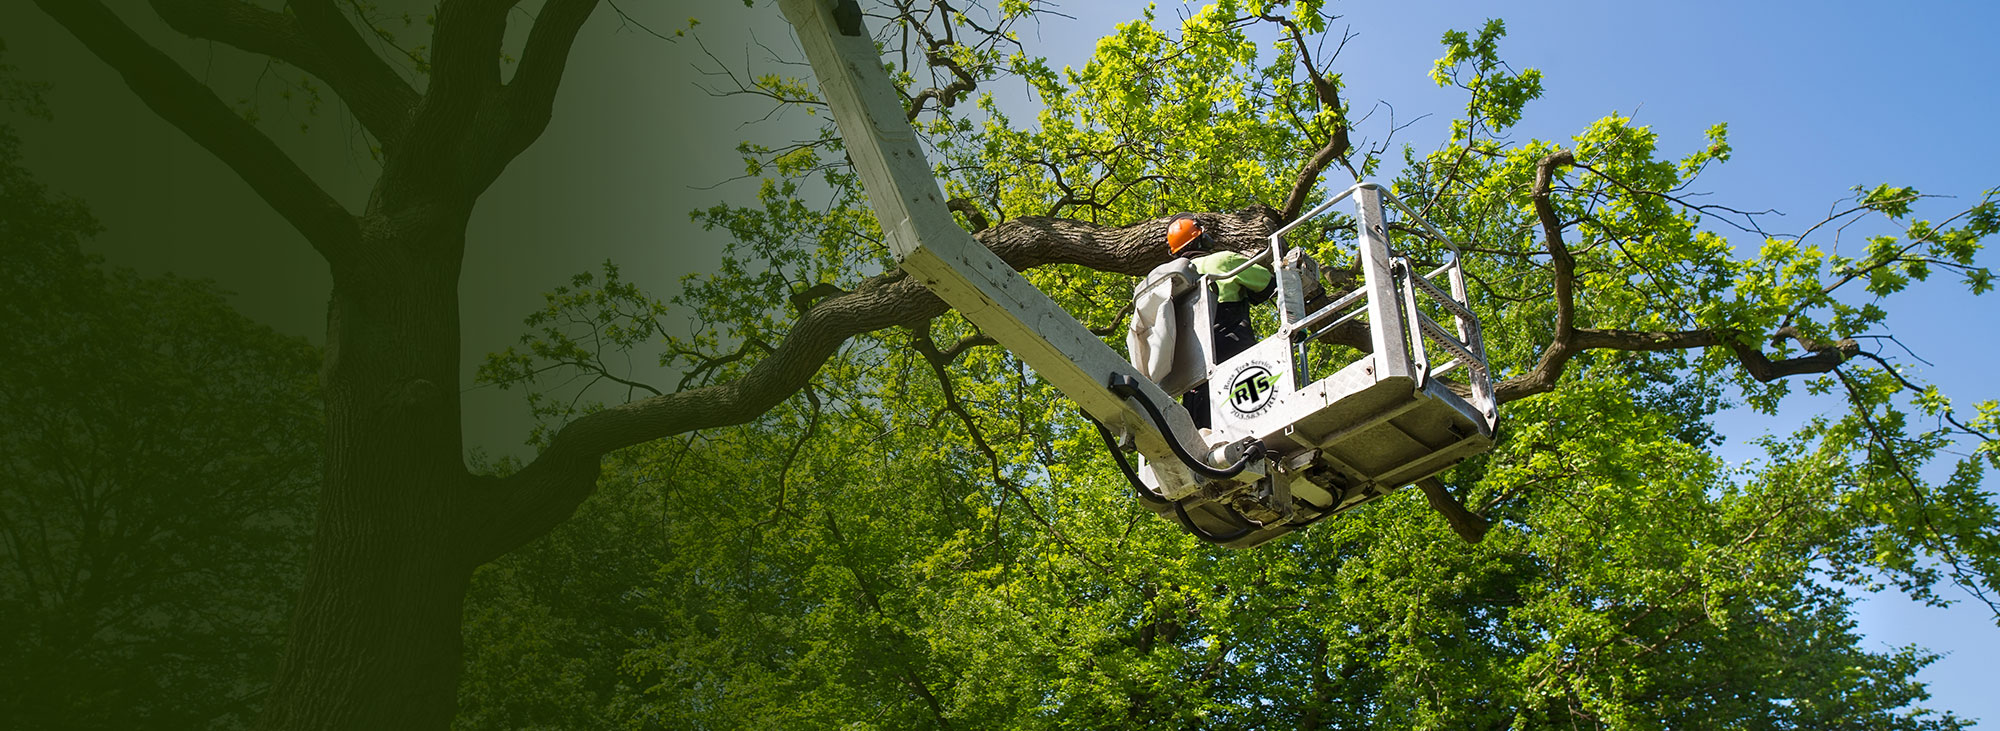 Florida Tree Service Pros Banner Image2-We Offer Tree Trimming Services, Tree Removal, Tree Pruning, Tree Cutting, Residential and Commercial Tree Trimming Services, Storm Damage, Emergency Tree Removal, Land Clearing, Tree Companies, Tree Care Service, Stump Grinding, and we're the Best Tree Trimming Company Near You Guaranteed!